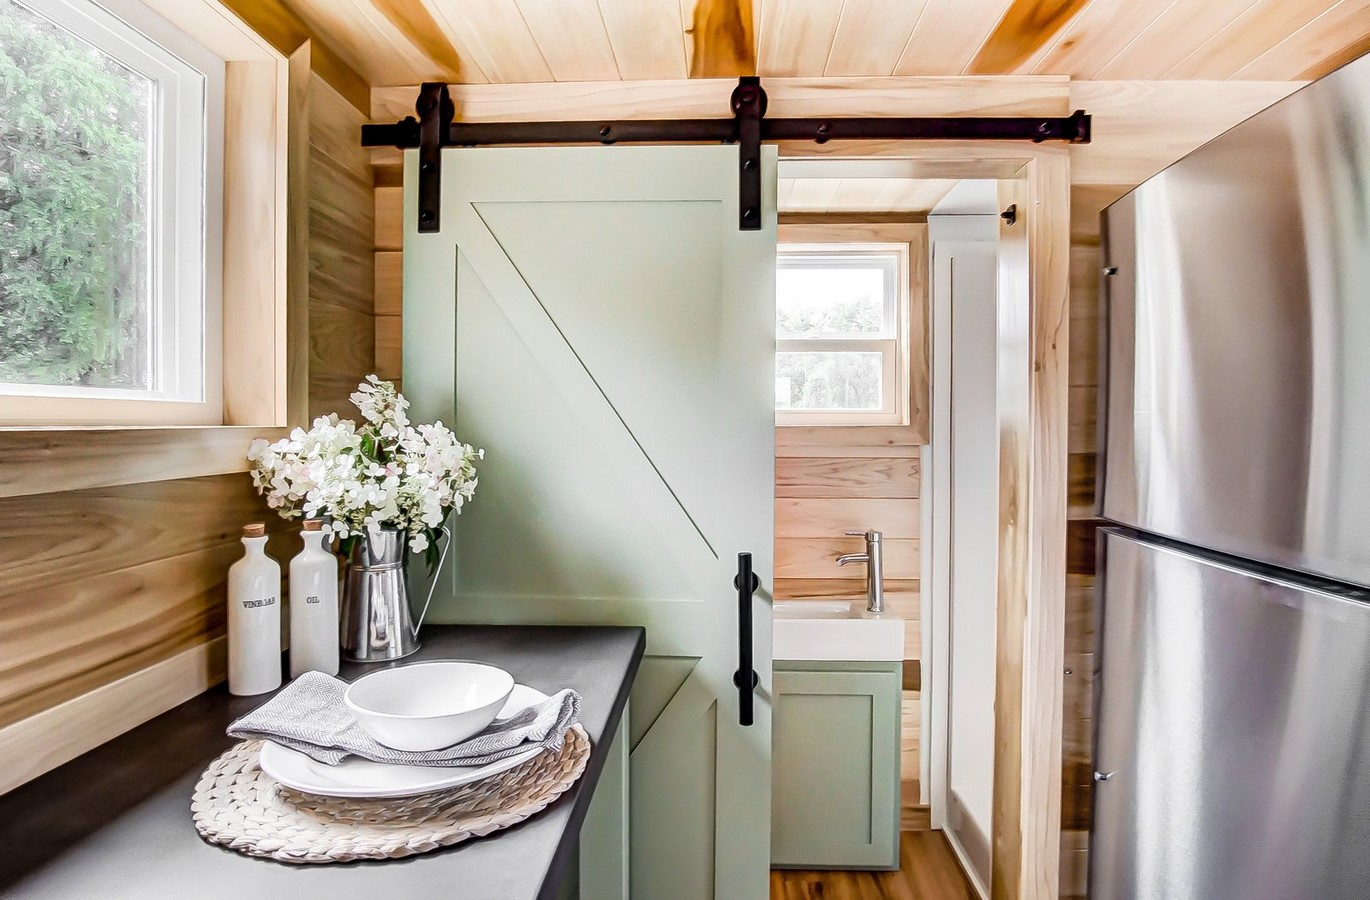 20 Trendy space saving solutions for tiny homes - Sheet10